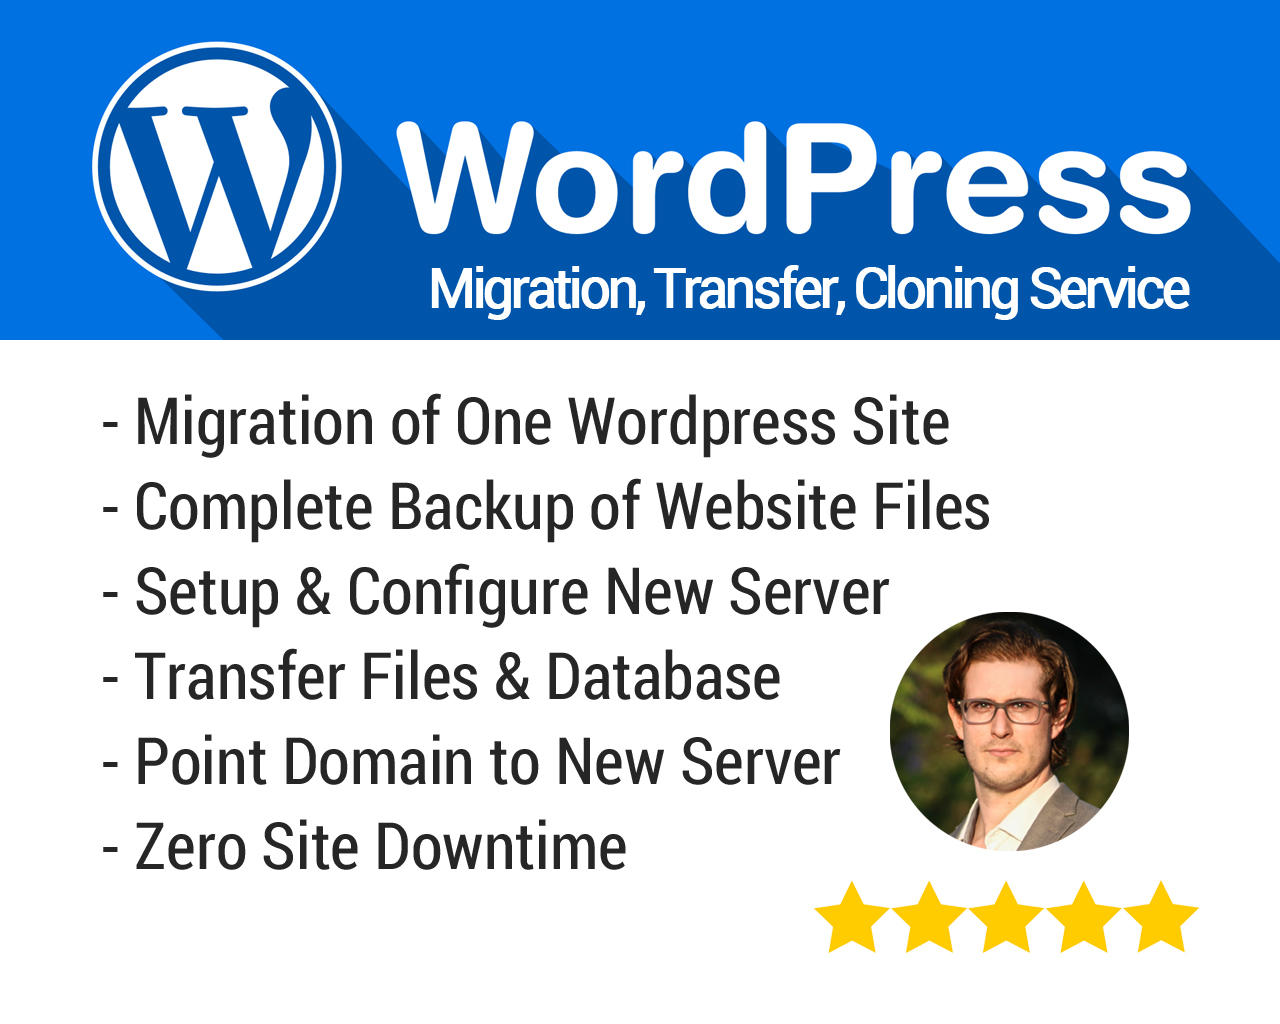 Wordpress Website Migration Transfer Moving Cloning Service by studioinlieu - 110162